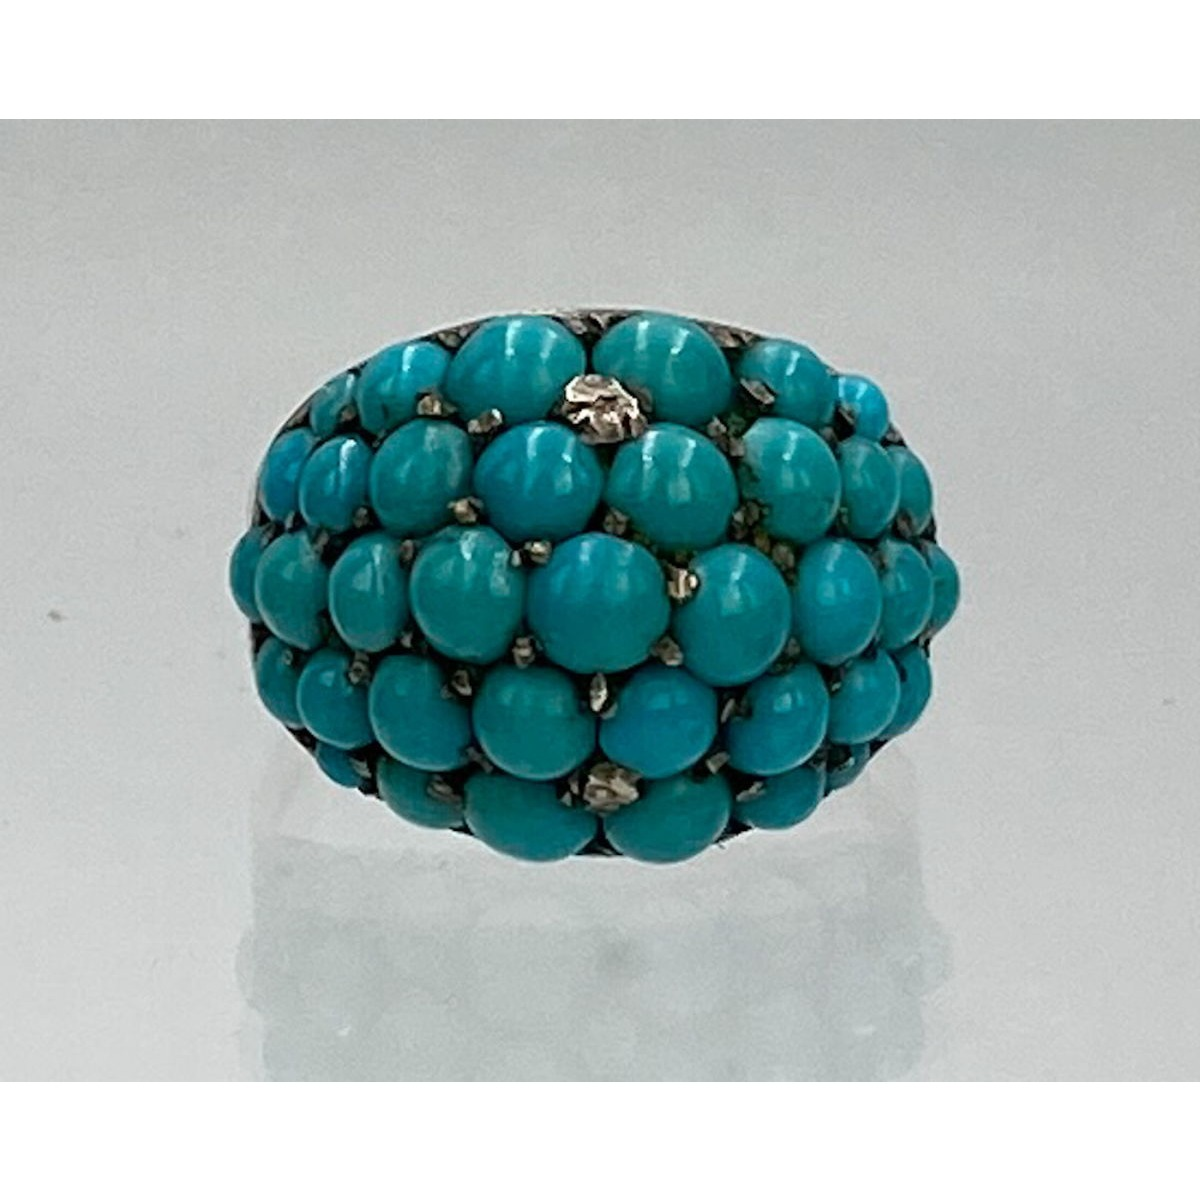 Brilliant Persian Turquoise and Diamond Encrusted Gold Antique English Ring